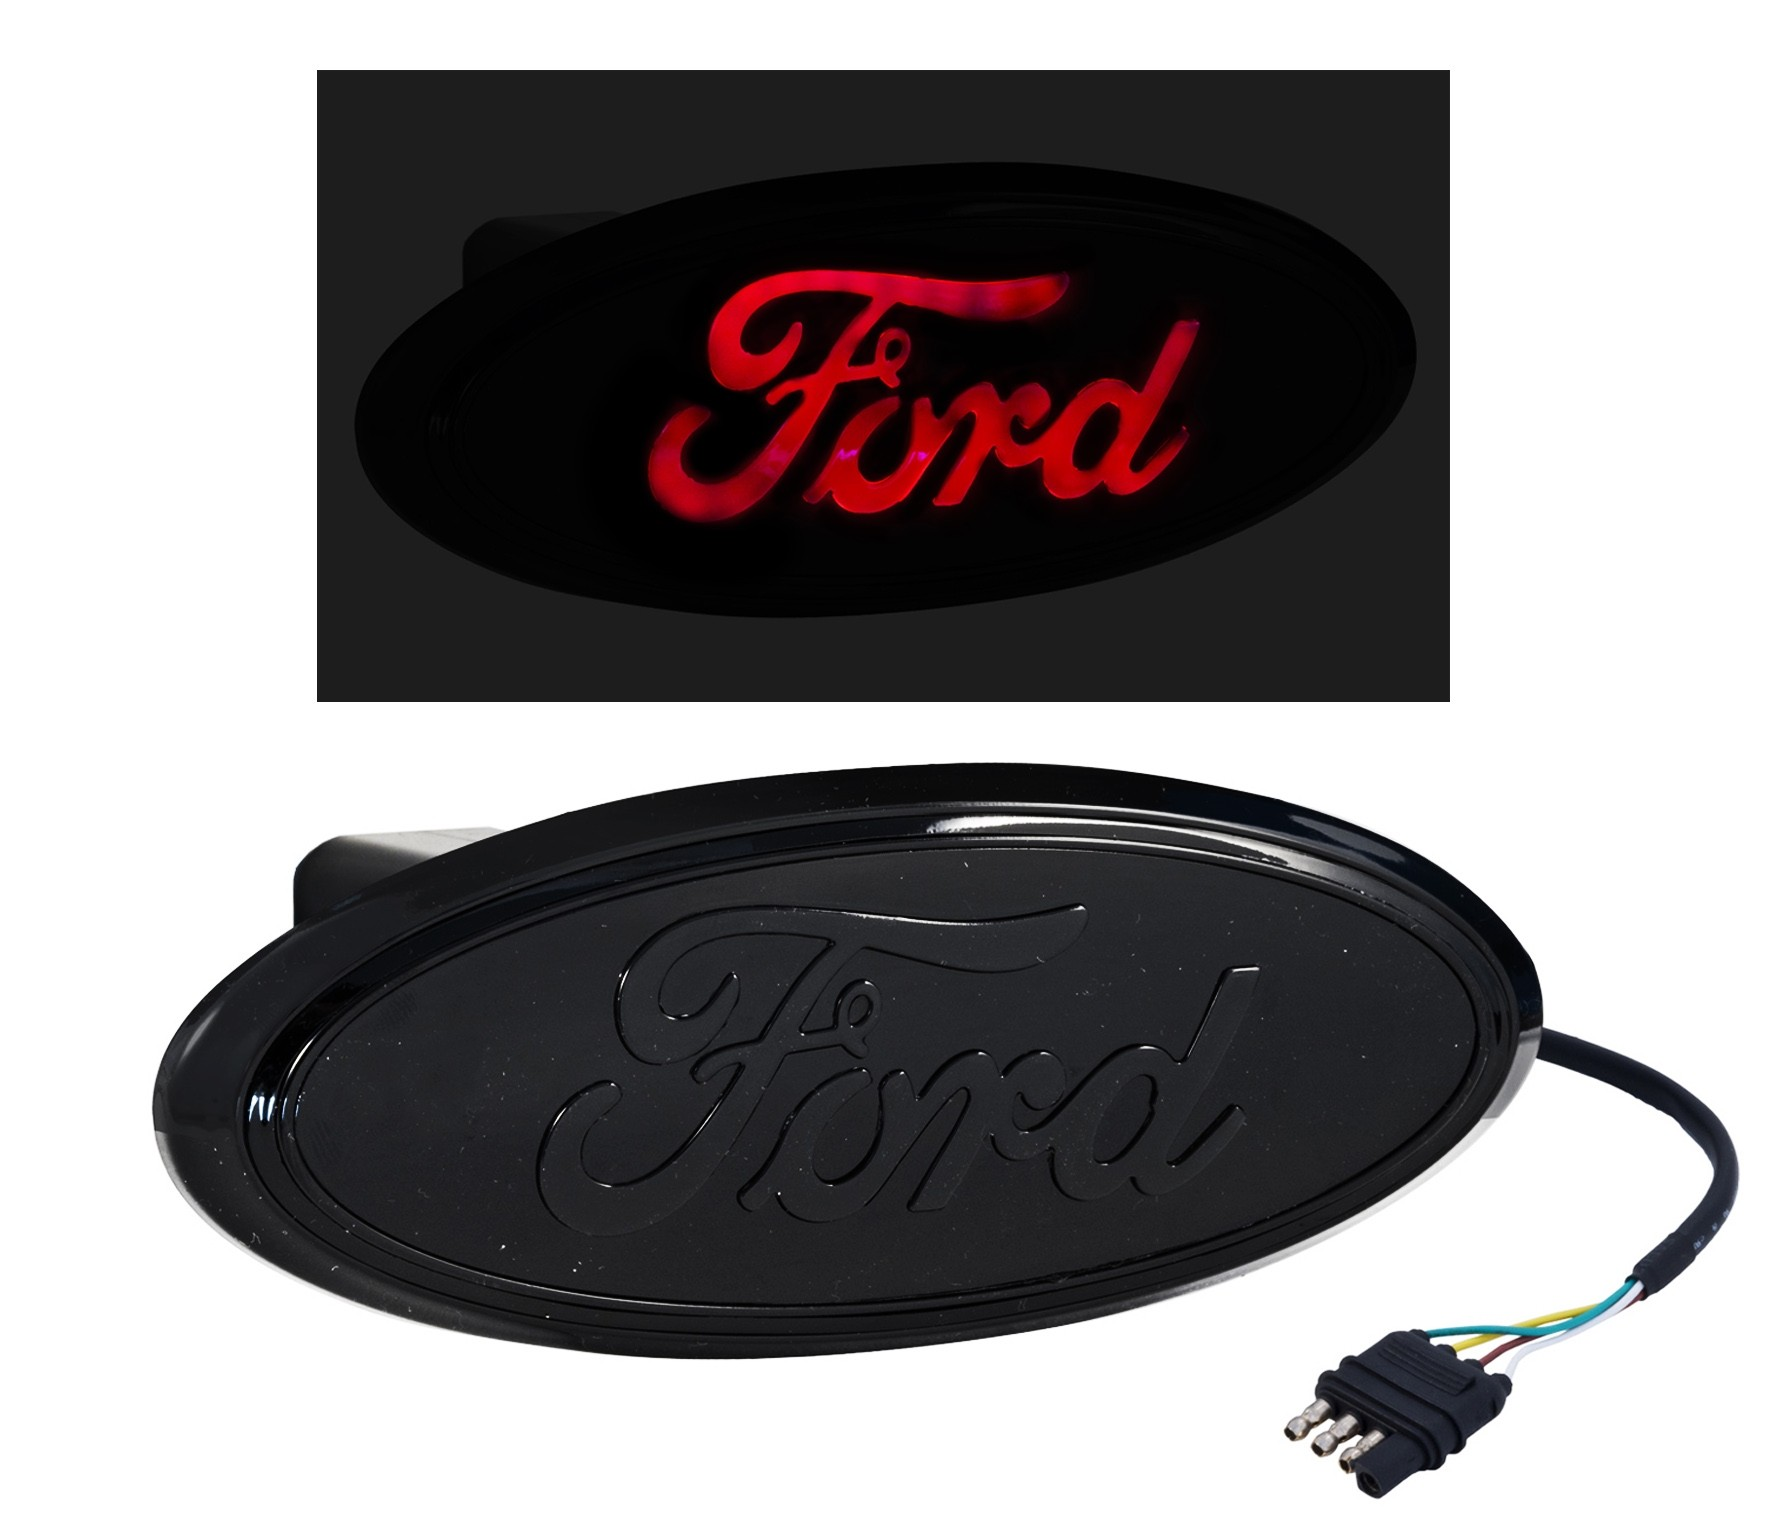 "Ford Truck Rear Tow Hook 2"" Hitch Cover LED Light Up Emblem - Black"